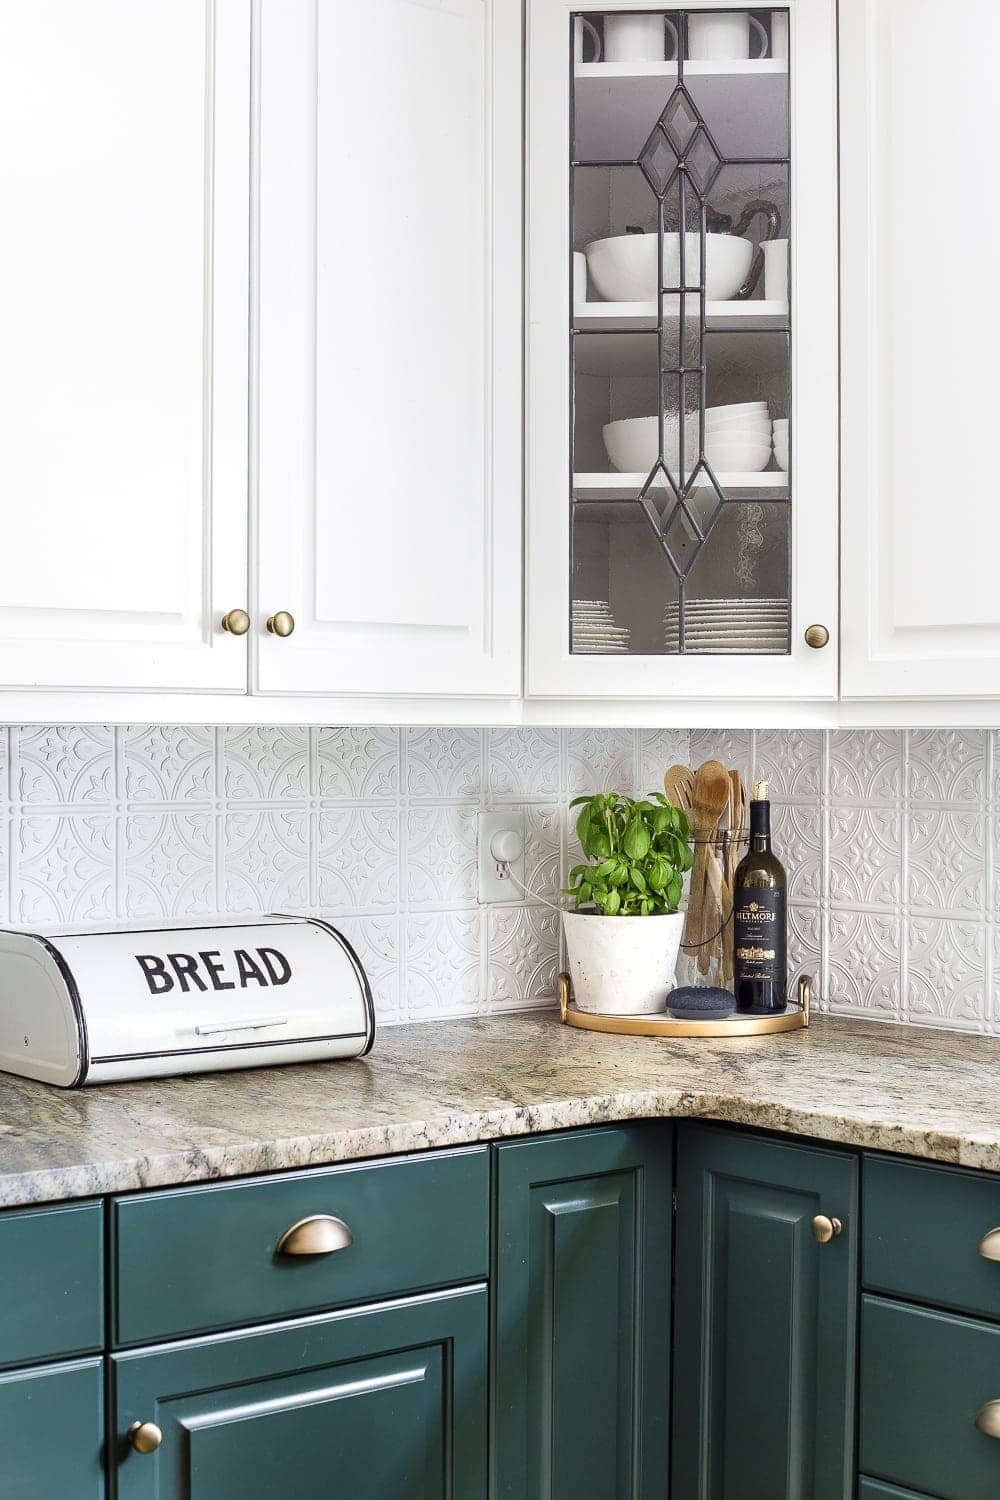 budget kitchen refresh reveal with two tone deep green cabinets, leathered granite, and pressed ceiling tile backsplash